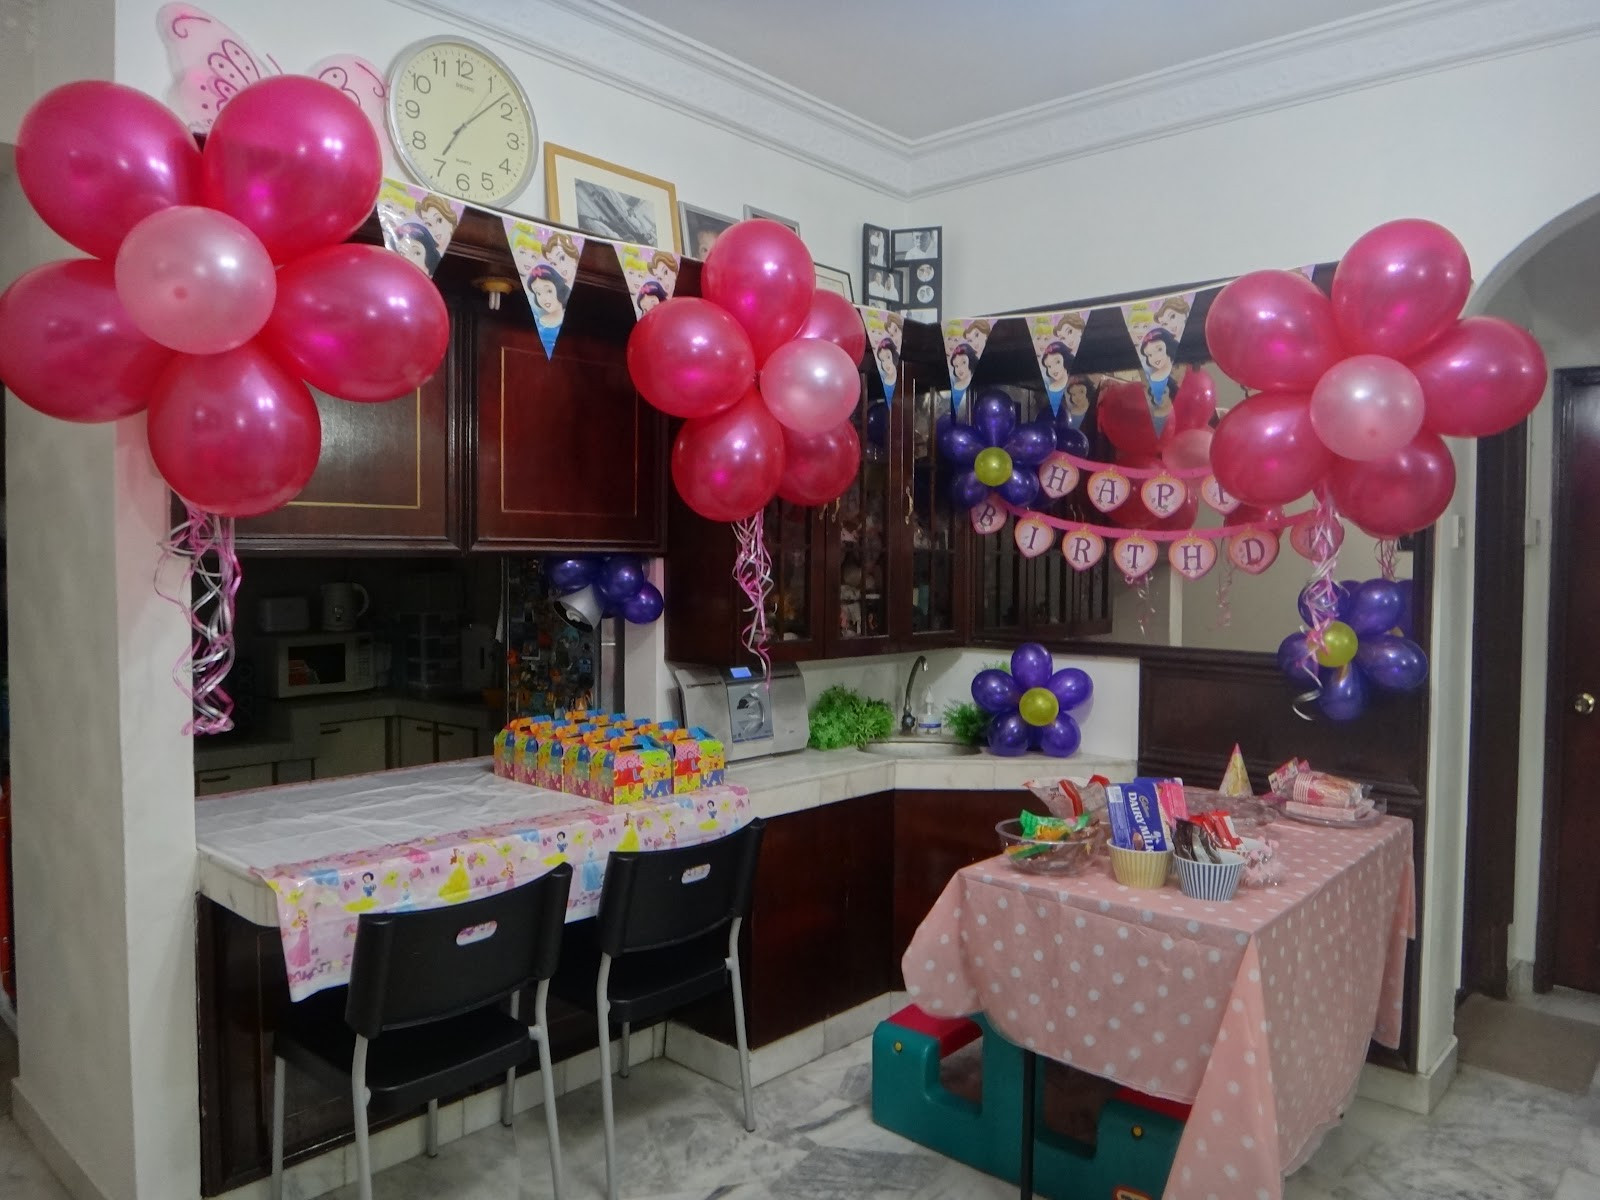 Best ideas about Birthday Party Decorations At Home . Save or Pin Birthday Decorations At Home Now.